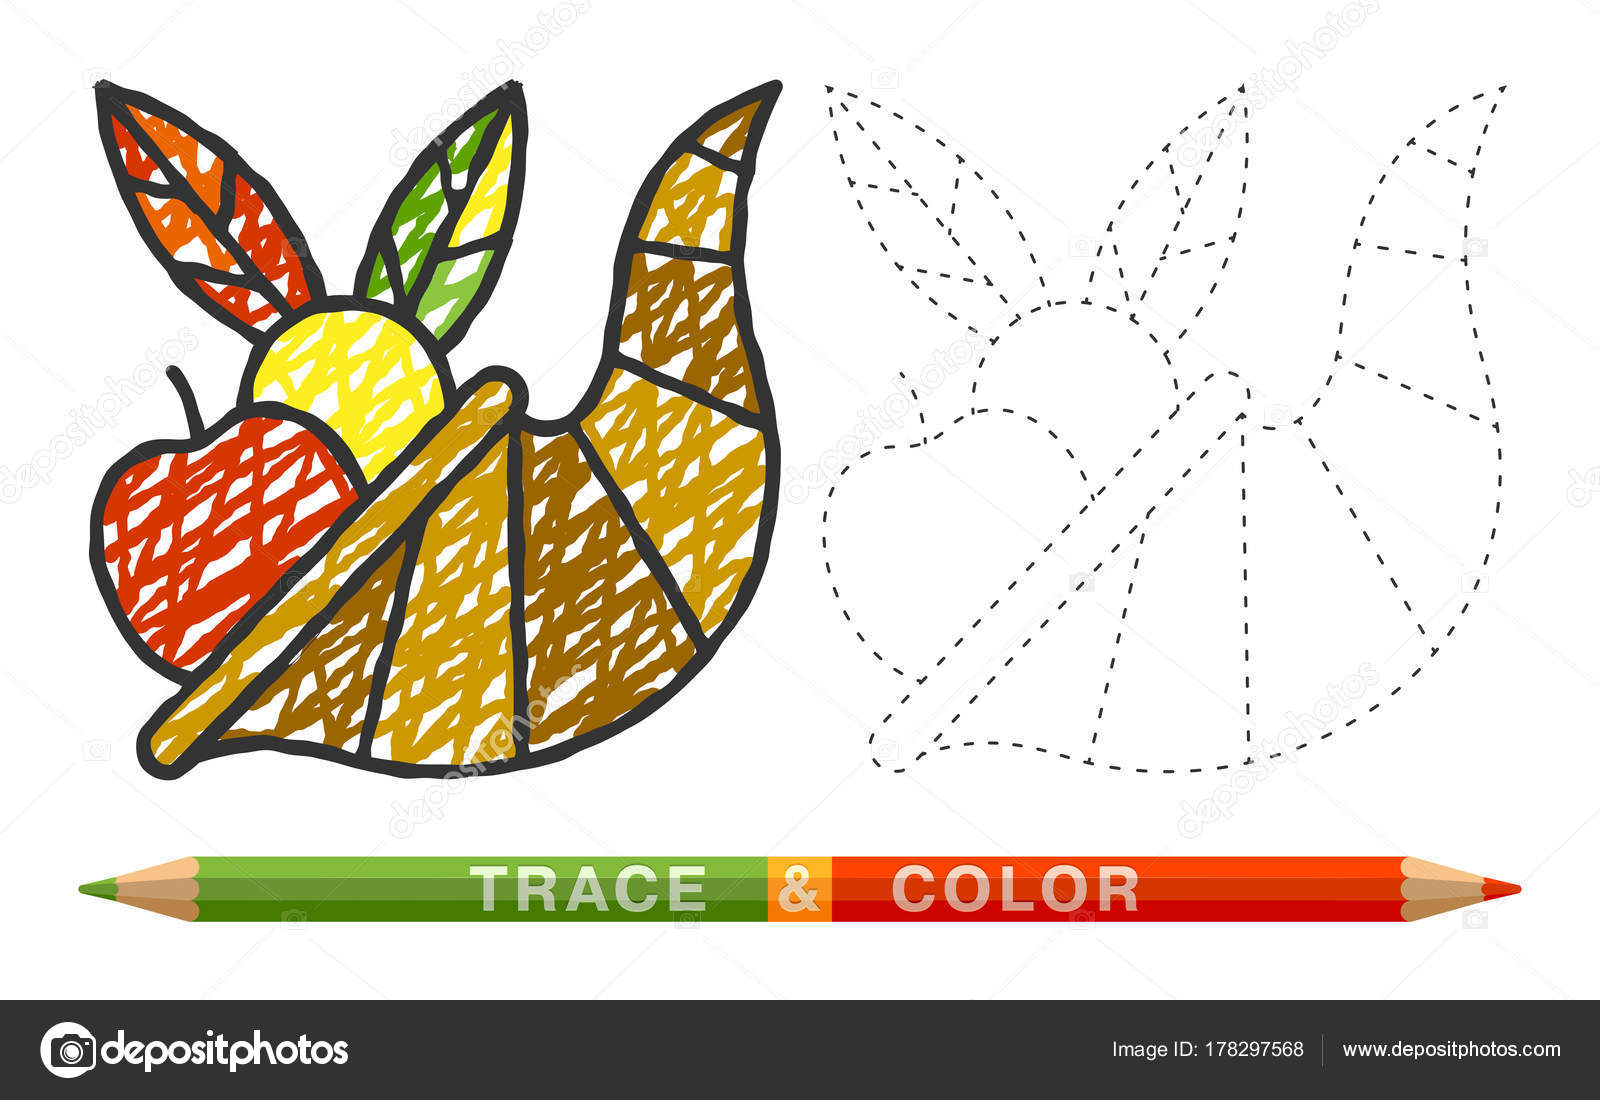 Dotted line and coloring crayon cornucopia icon — Stock Vector ...